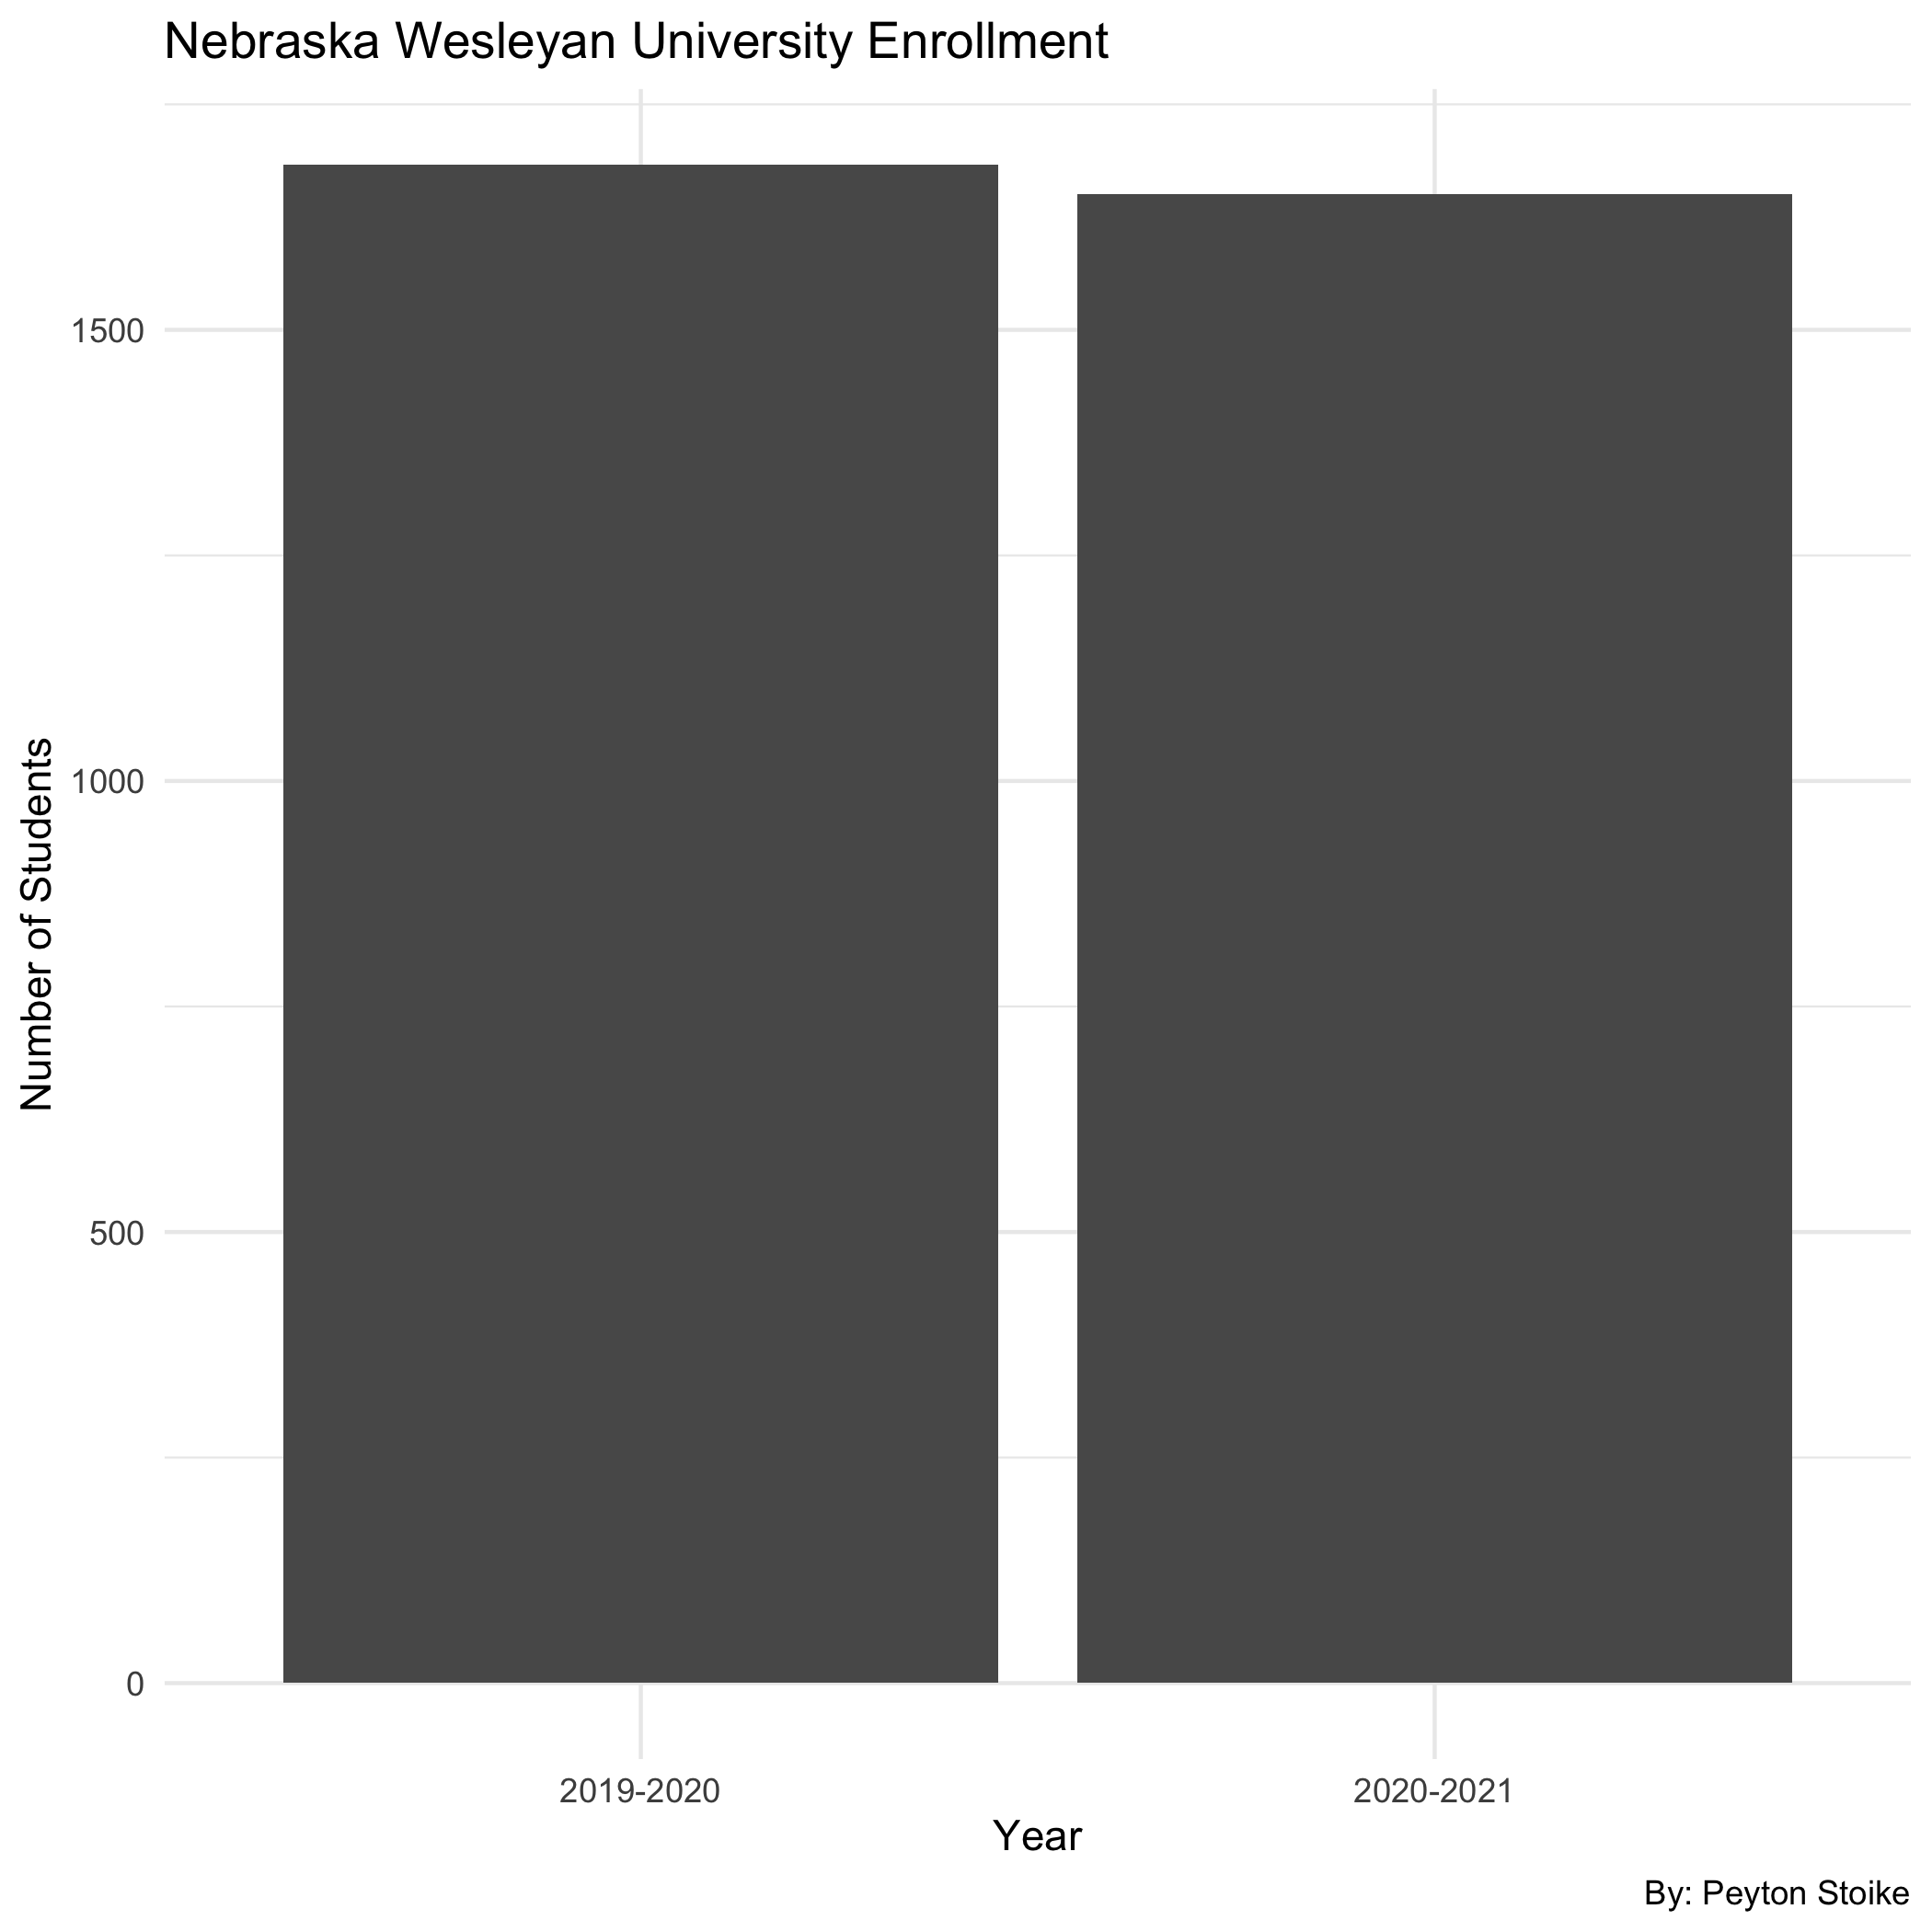 Even through a global pandemic, Wesleyan maintained similar enrollment numbers for full time students. Wesleyan only lost about 30 students. This is the least amount of change among the colleges interviewed. There is no true way to know if change in number of students between the 2019-2020 and 2020-2021 school year is due to the global pandemic.